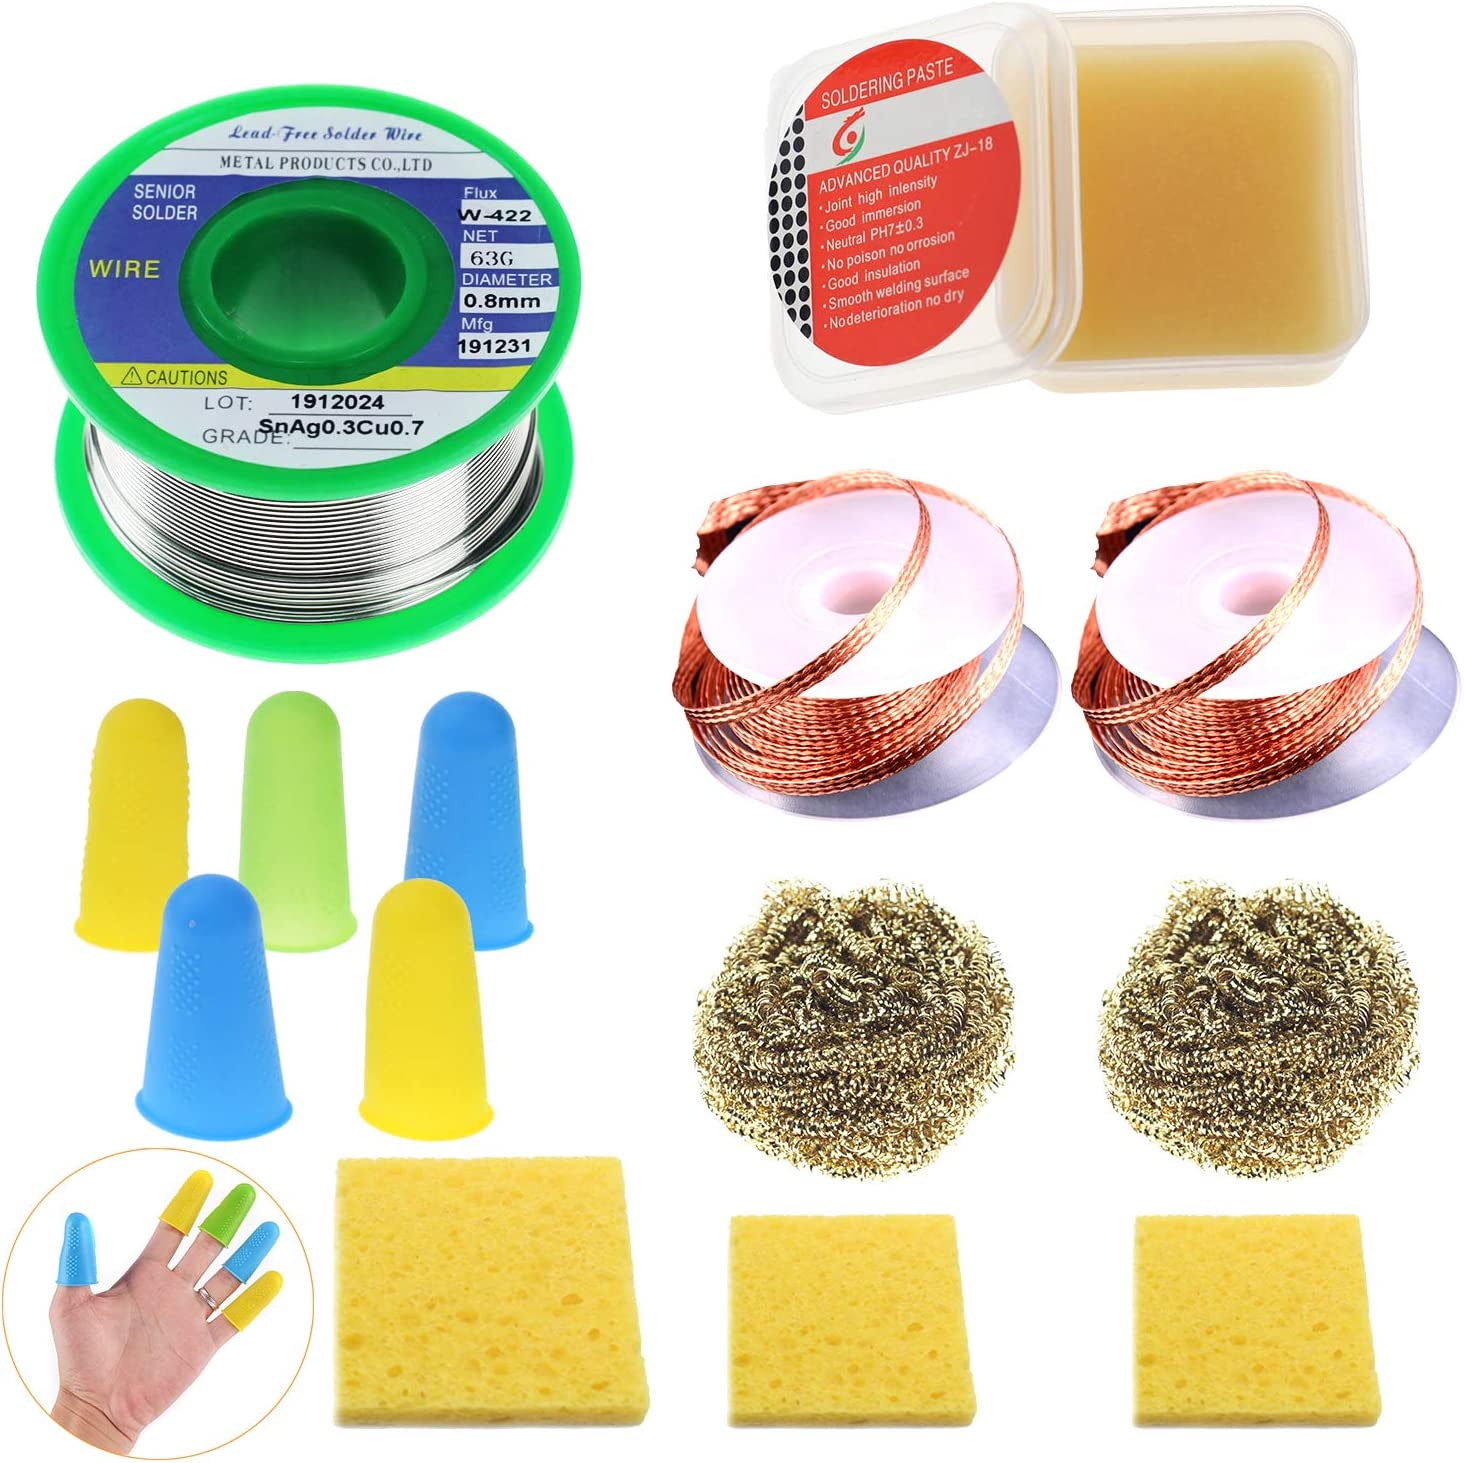 Bombing free shipping Makeronics Solder wire Iron Tip Electrical Solde ! Super beauty product restock quality top! Cleaner Kit for